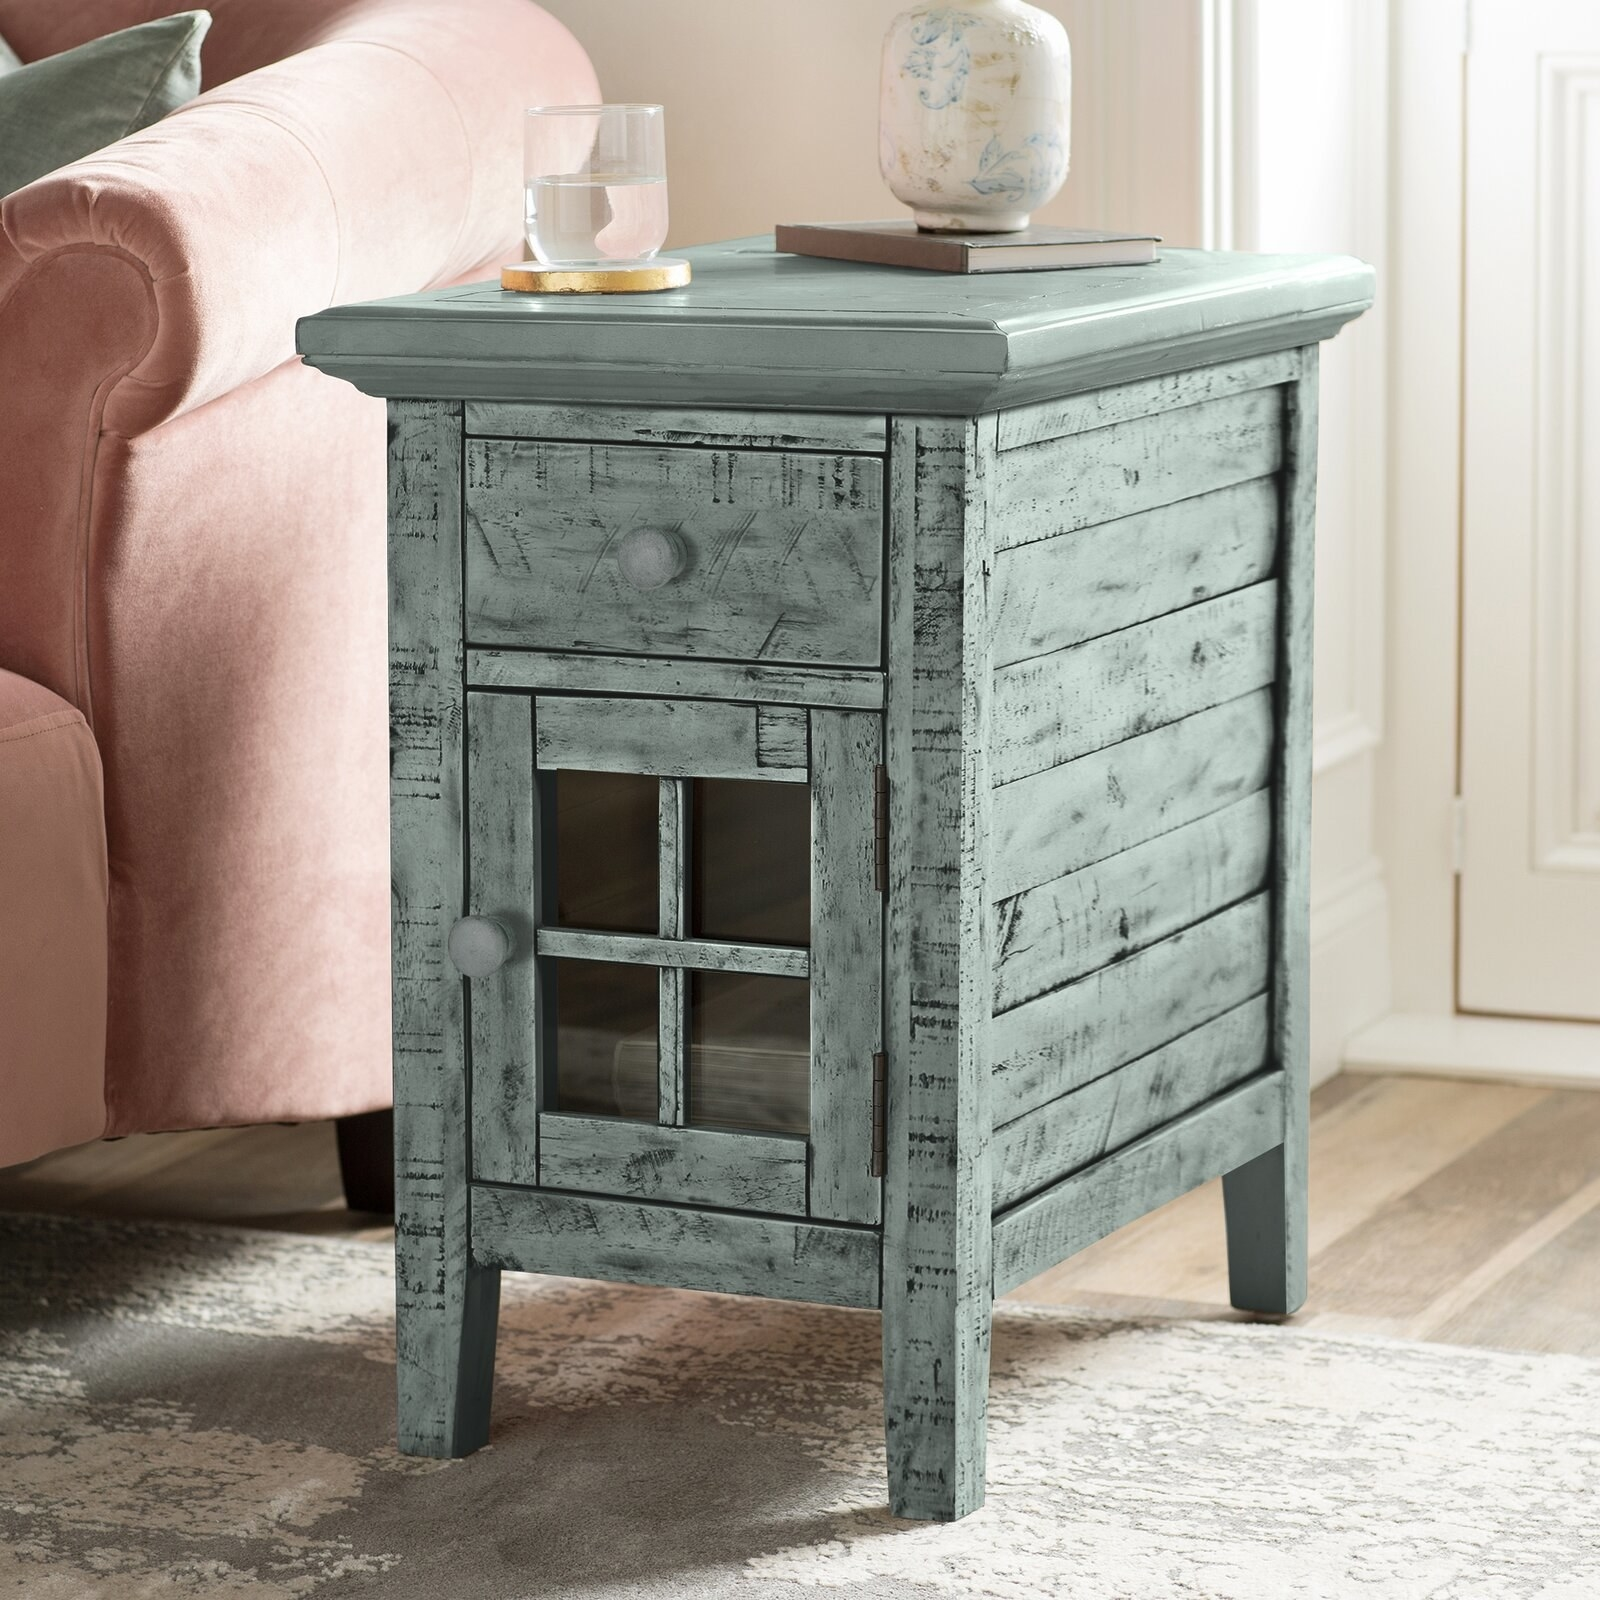 The end table, which has a glass-paneled cabinet door and a closed drawer, in blue-green